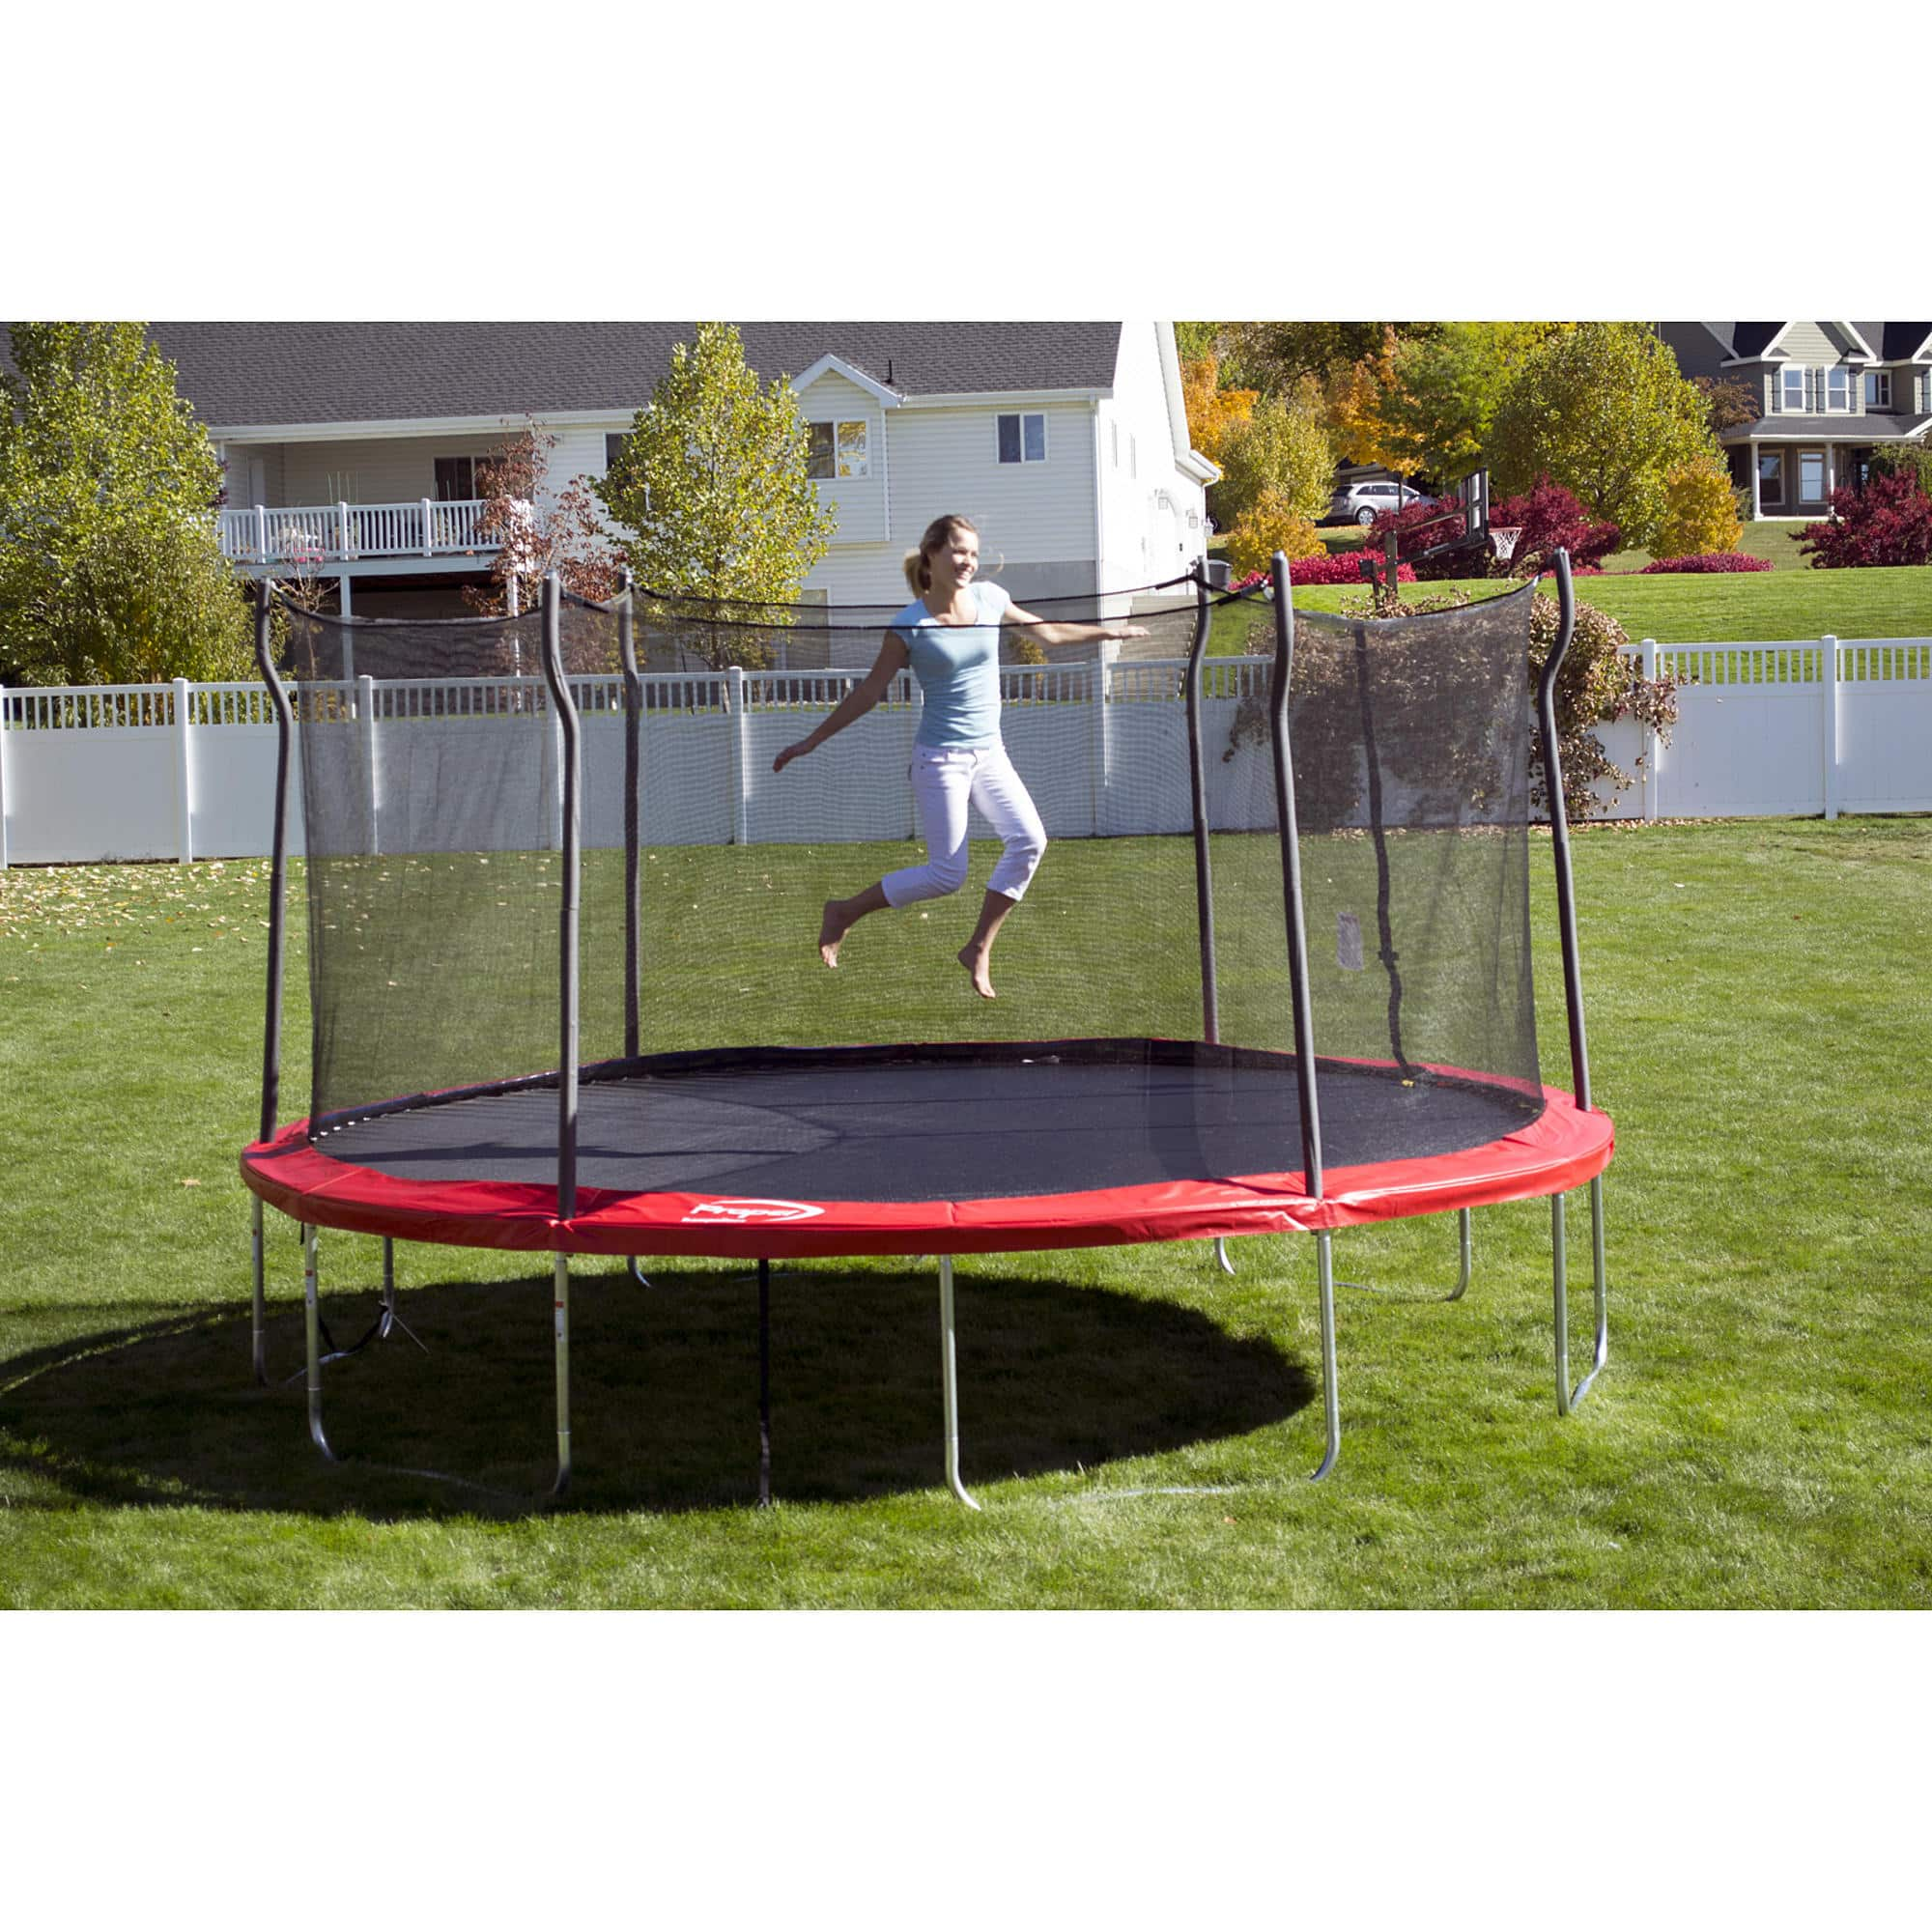 Propel Trampolines 15' Enclosed Trampoline w/ Anchor Kit 300lb limit $249.99 w/ $52.50 CASHBACK in sywr points @ sears w/ free store pickup $200